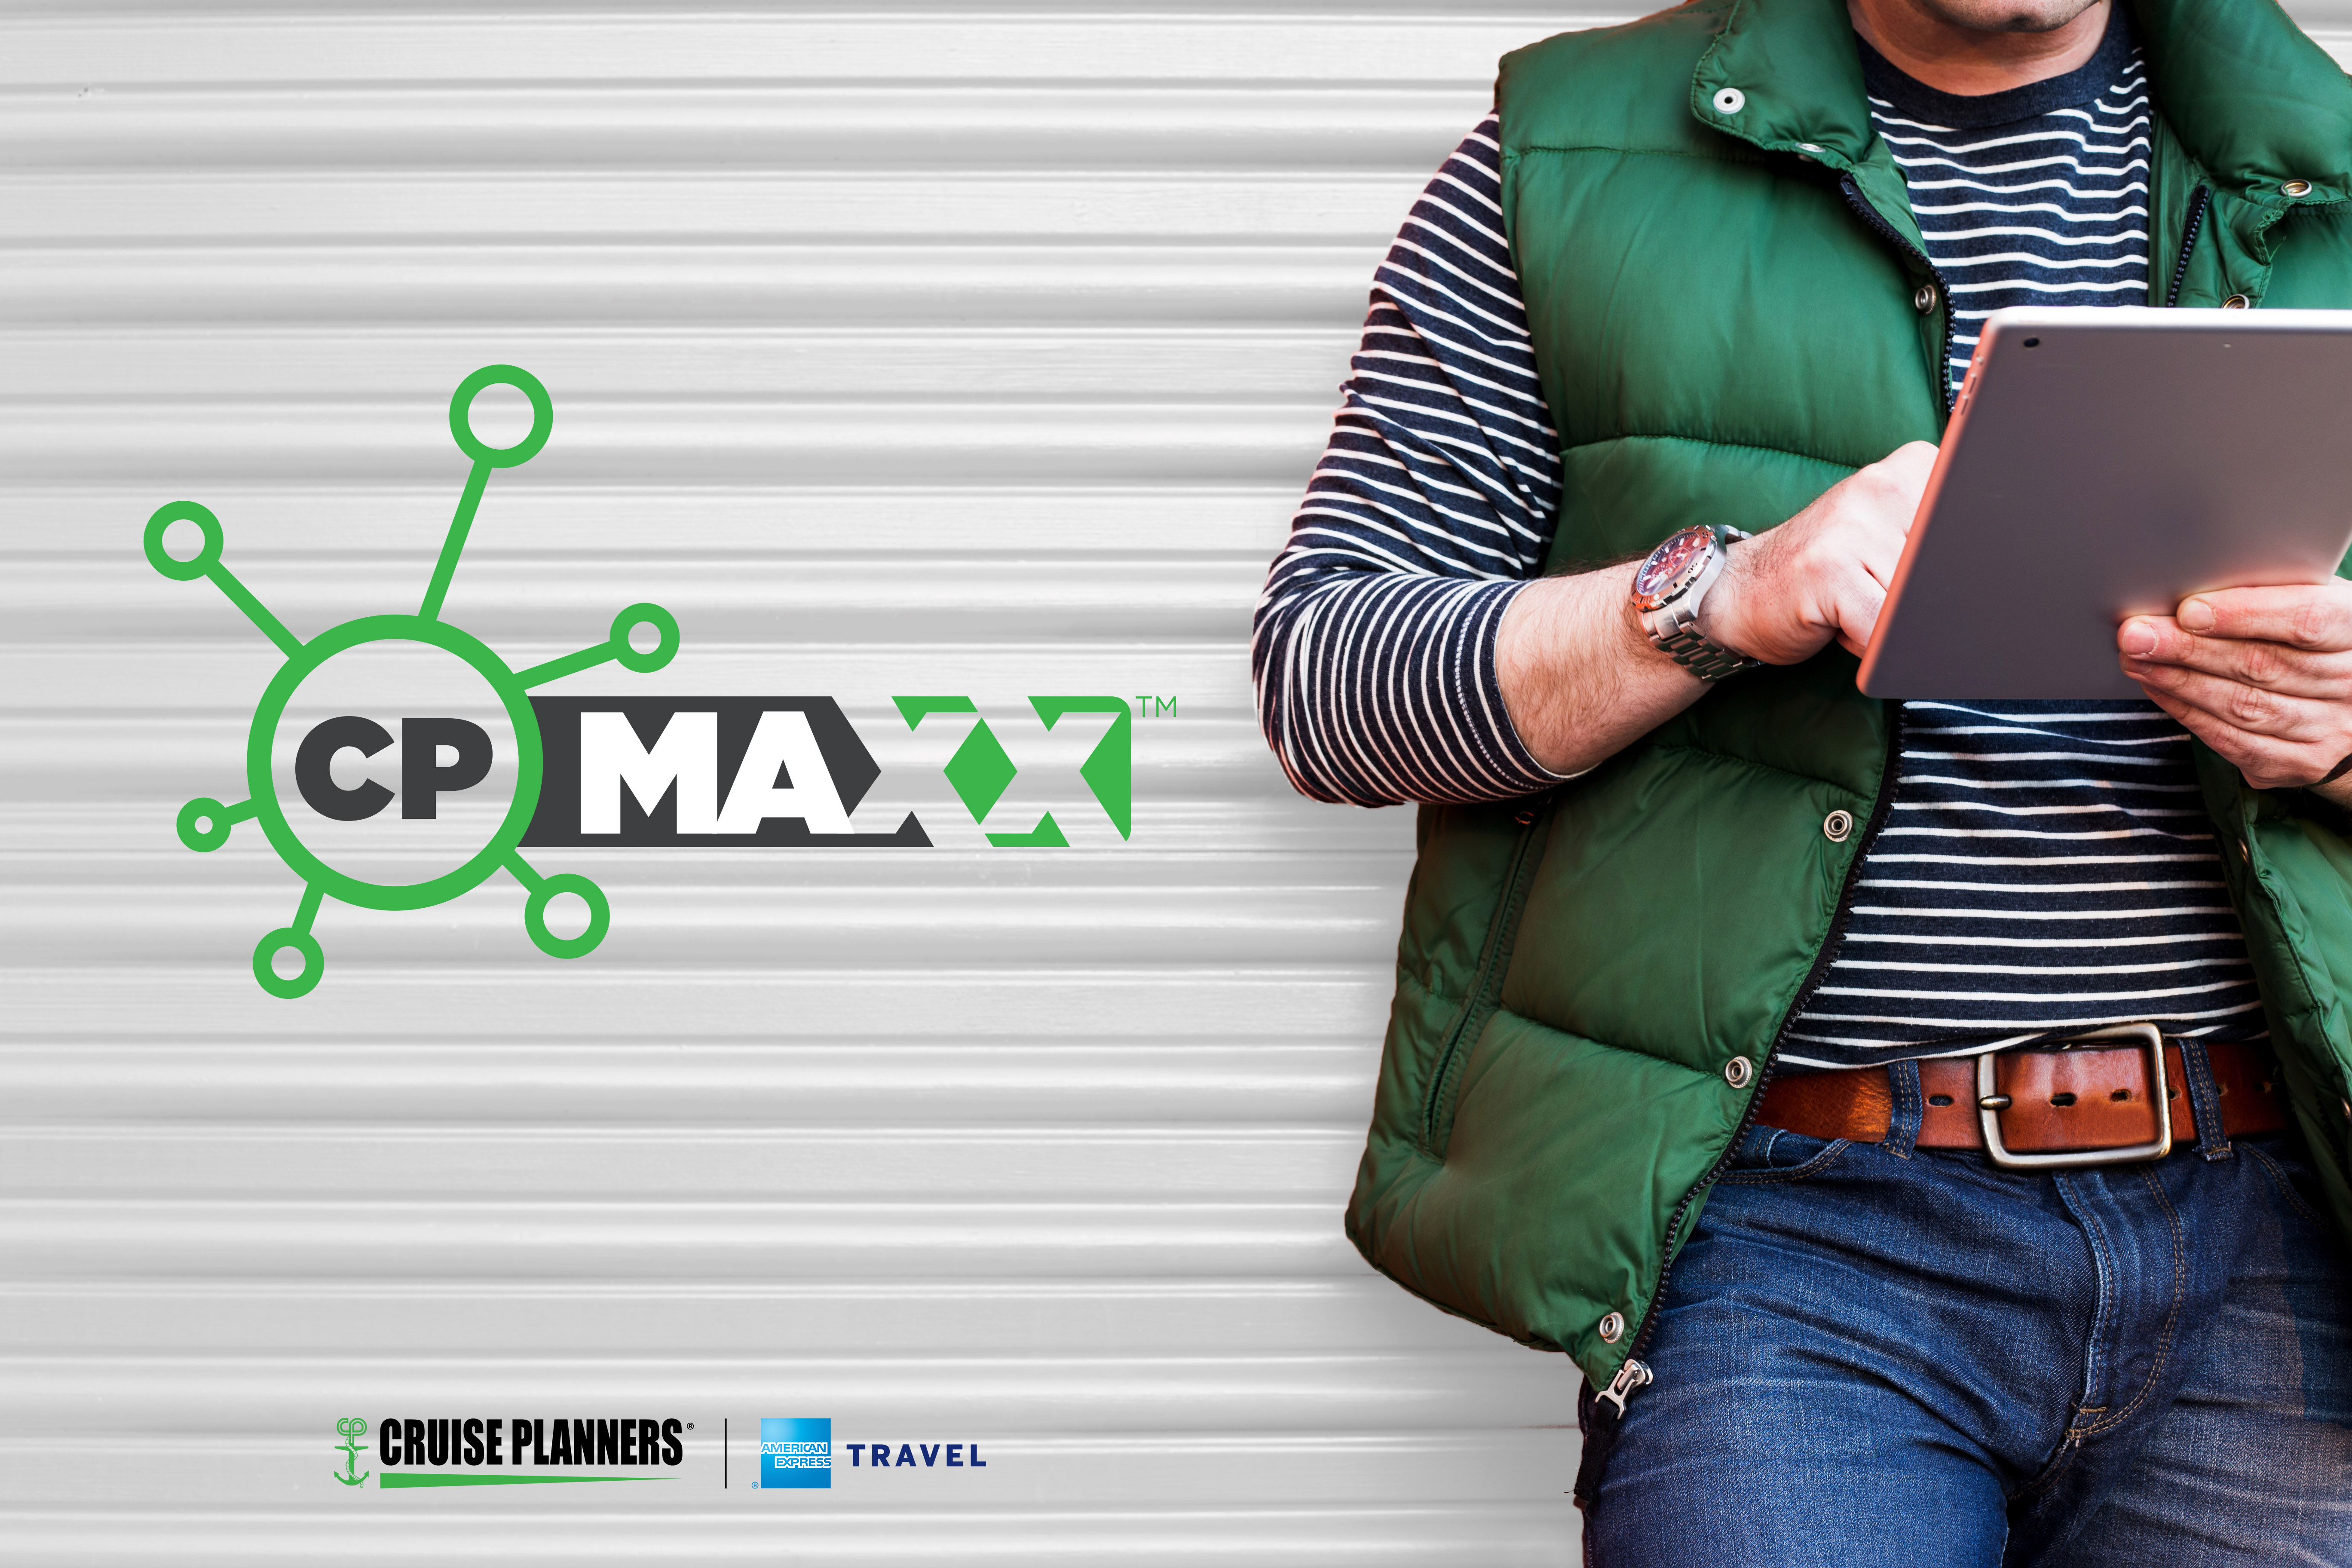 Cruise Planners® New Technology Sizzles with CP Maxx™ Rollout